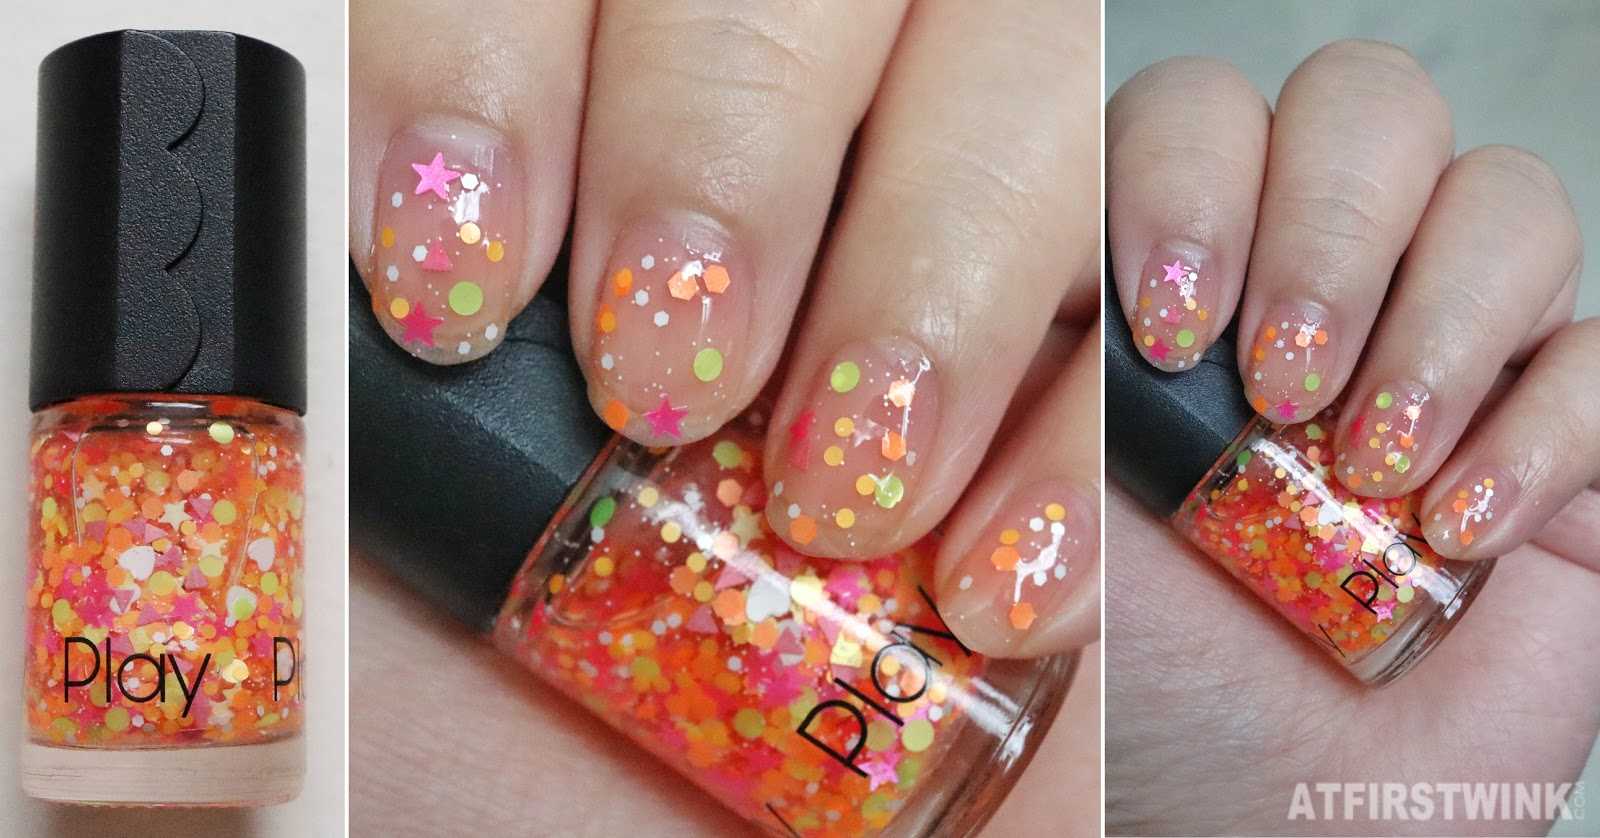 Etude House Play Nail OR053 Beach Volleyball nail polish swatch on nails far close up bottle glitters neon satin finish stars